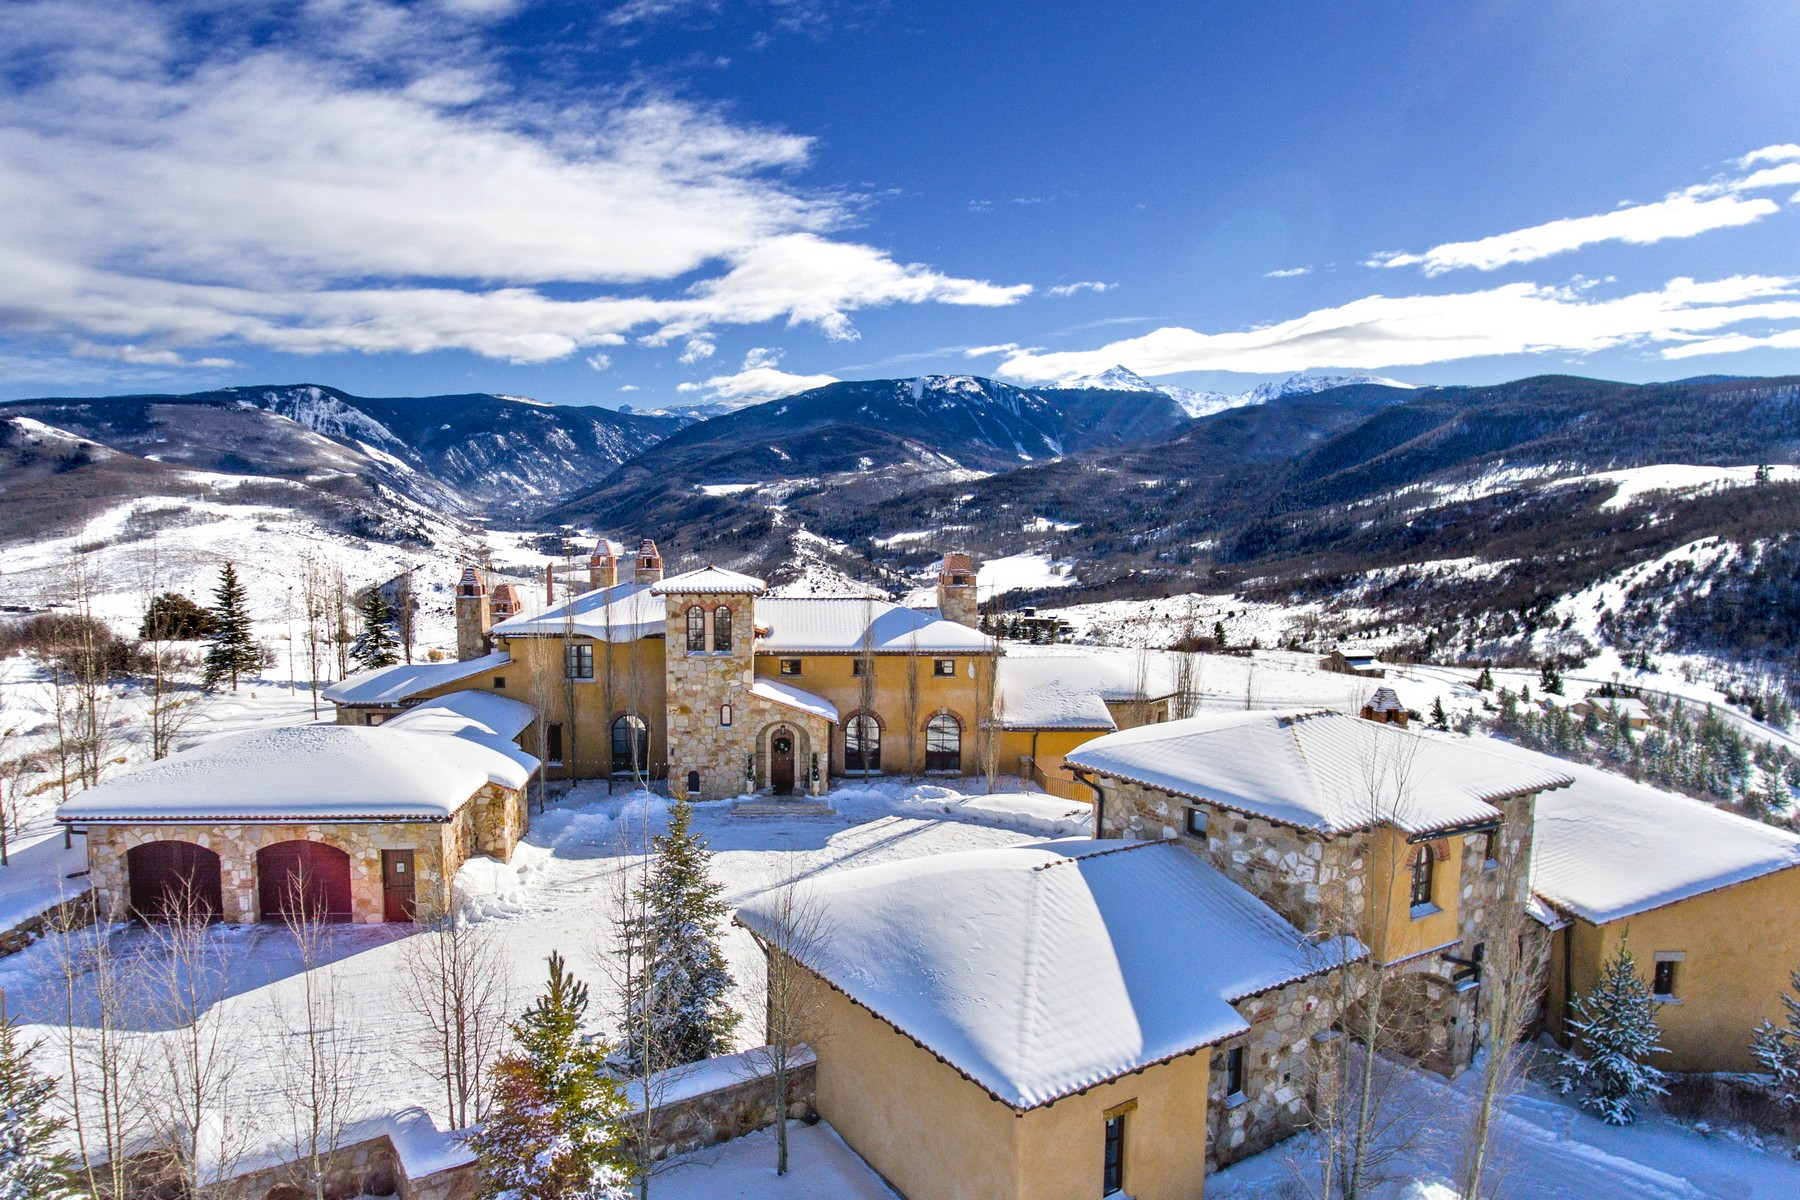 Single Family Home for Active at Luxury Vail Valley Estate 1548 Via La Favorita Edwards, 81632 United States